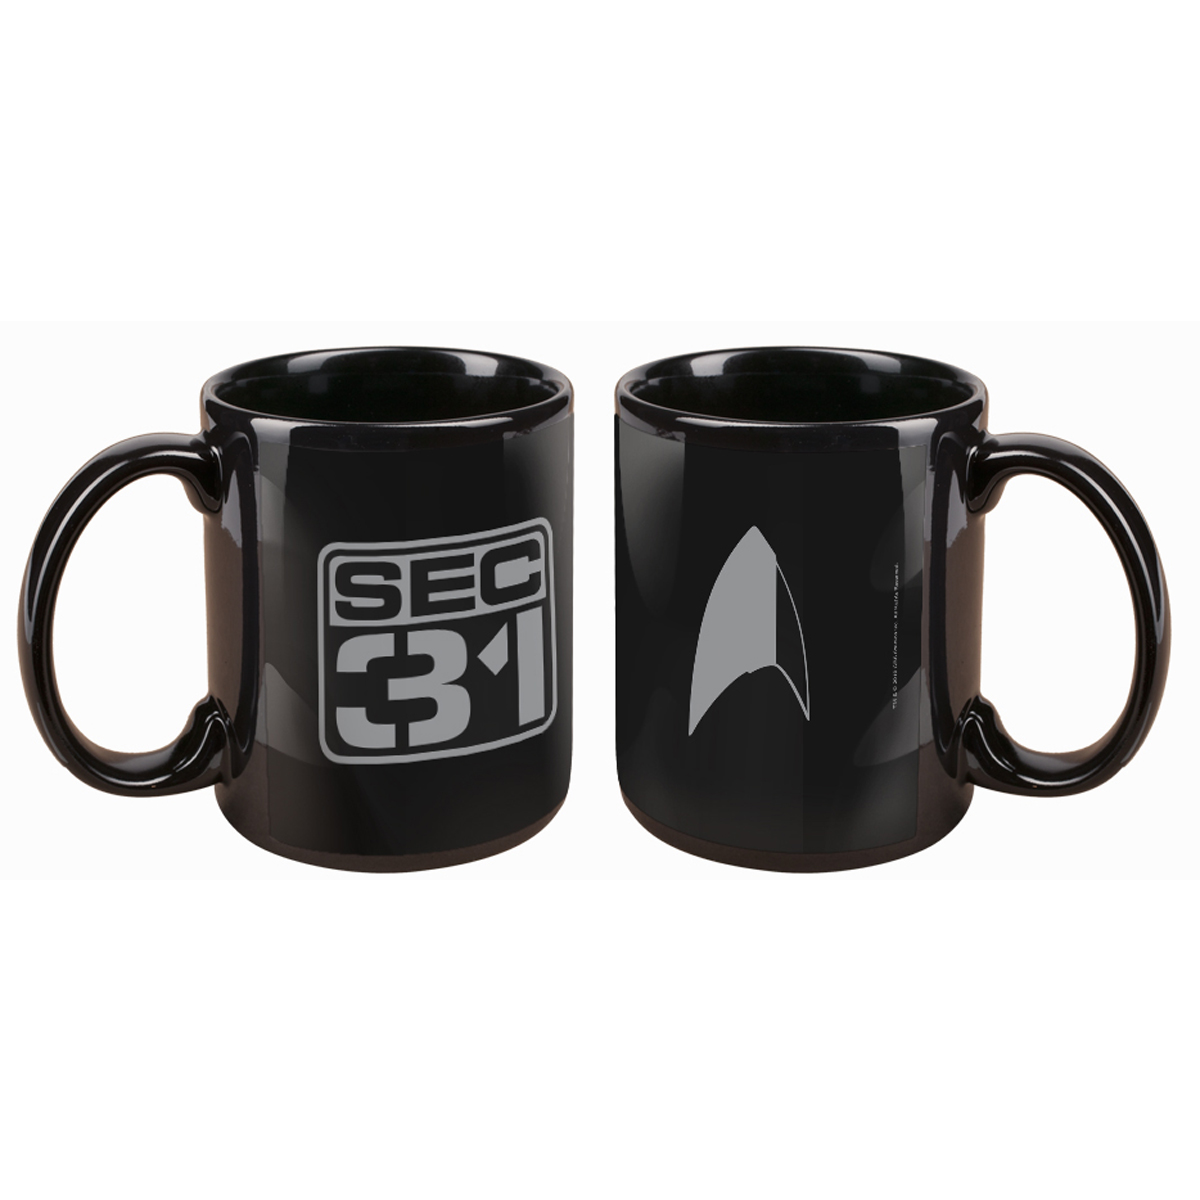 Star Trek Discovery Section 31 Mug